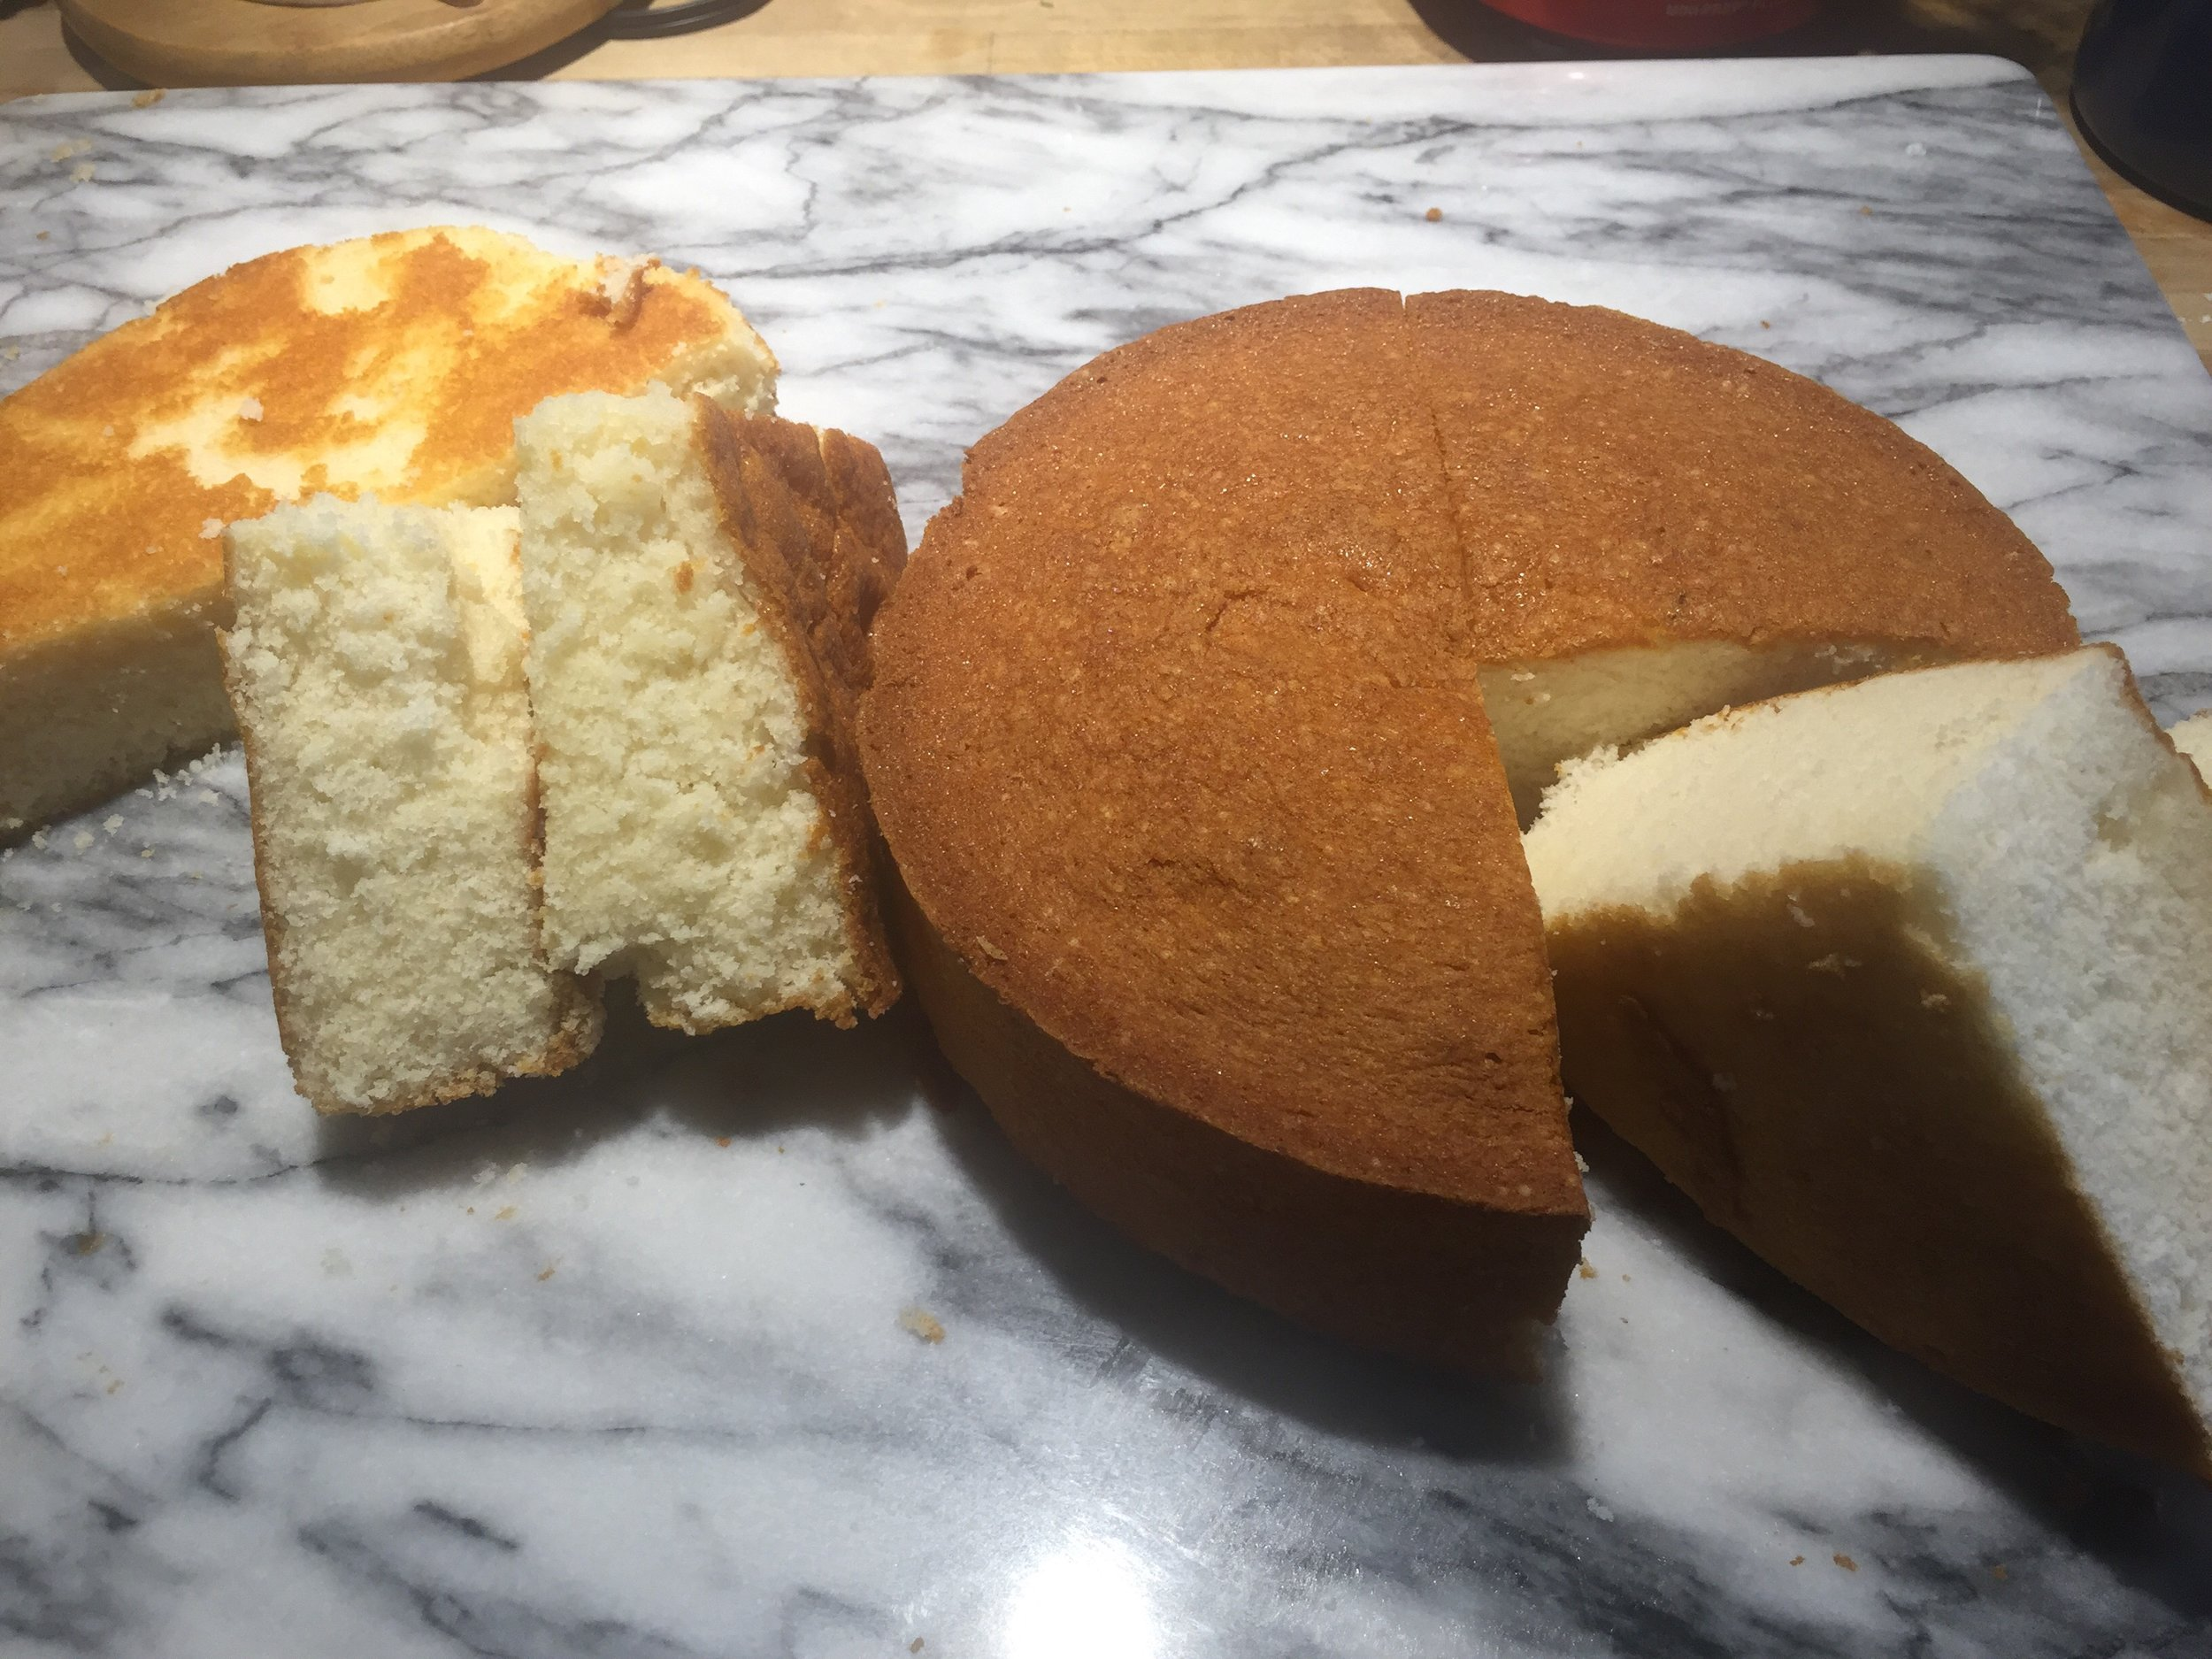 The real cake flour cake is on the right and the all purpose/cornstarch blend is on the left.